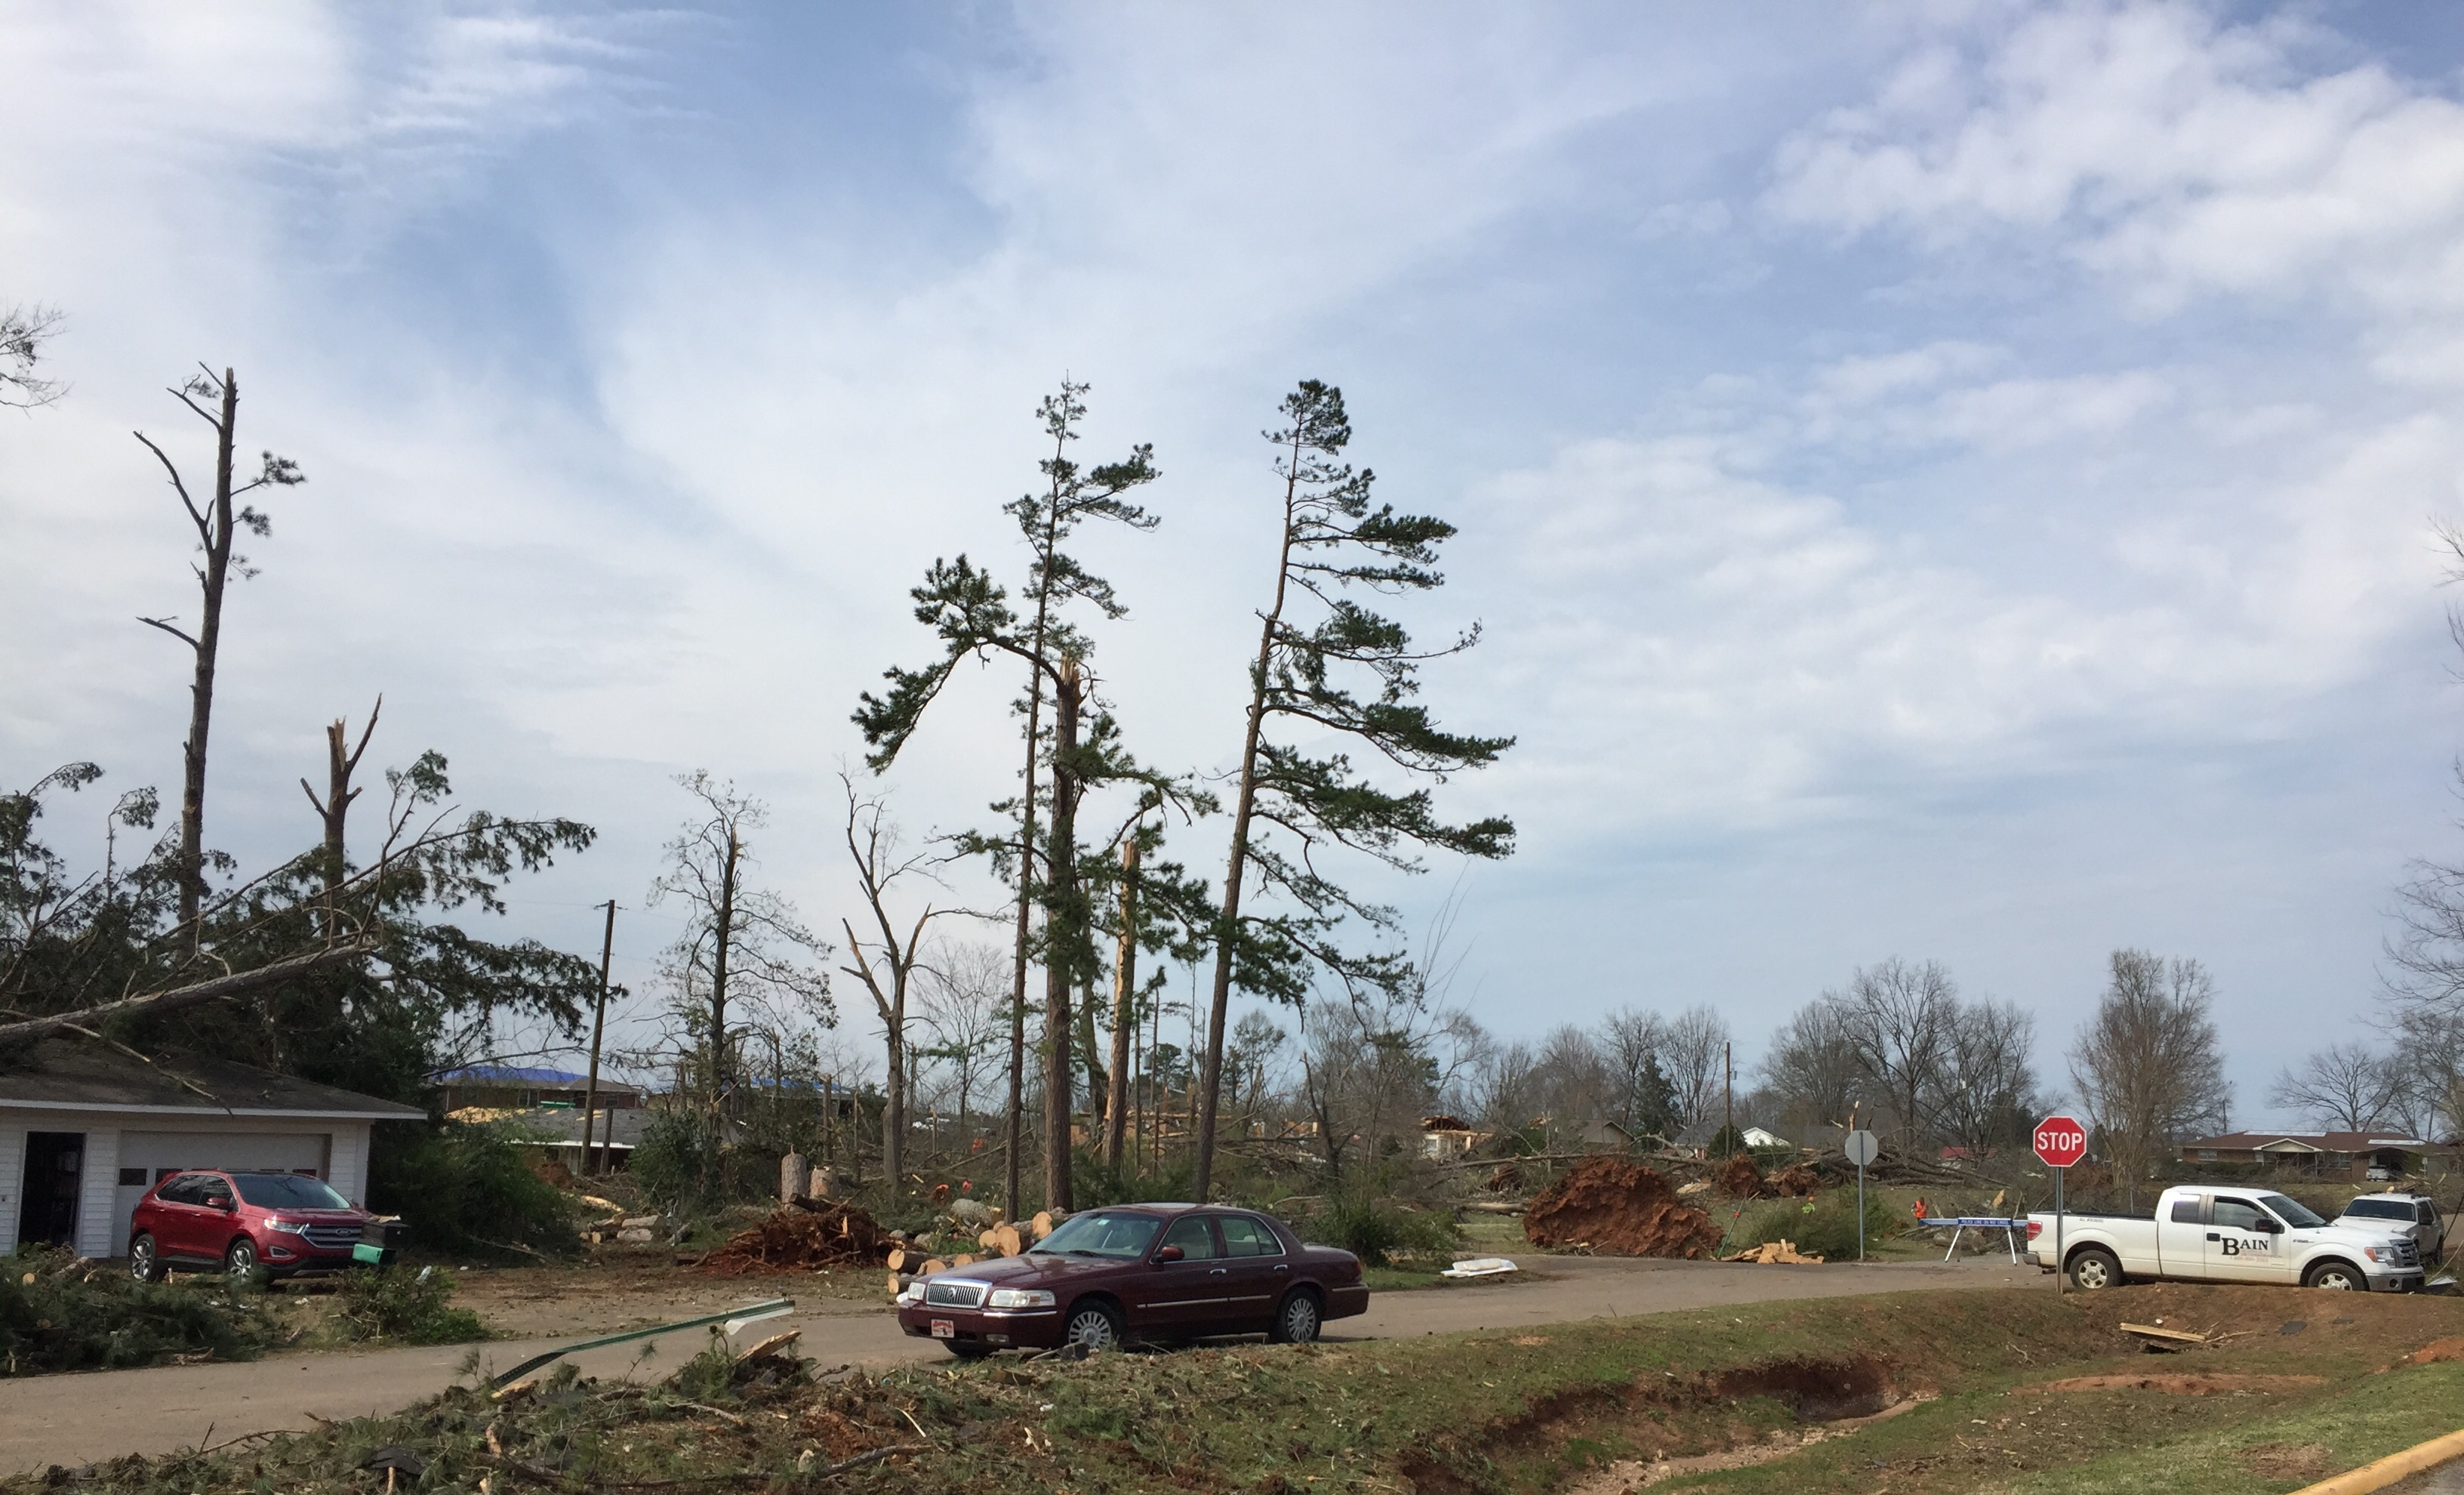 Homes damaged by storms in North Alabama